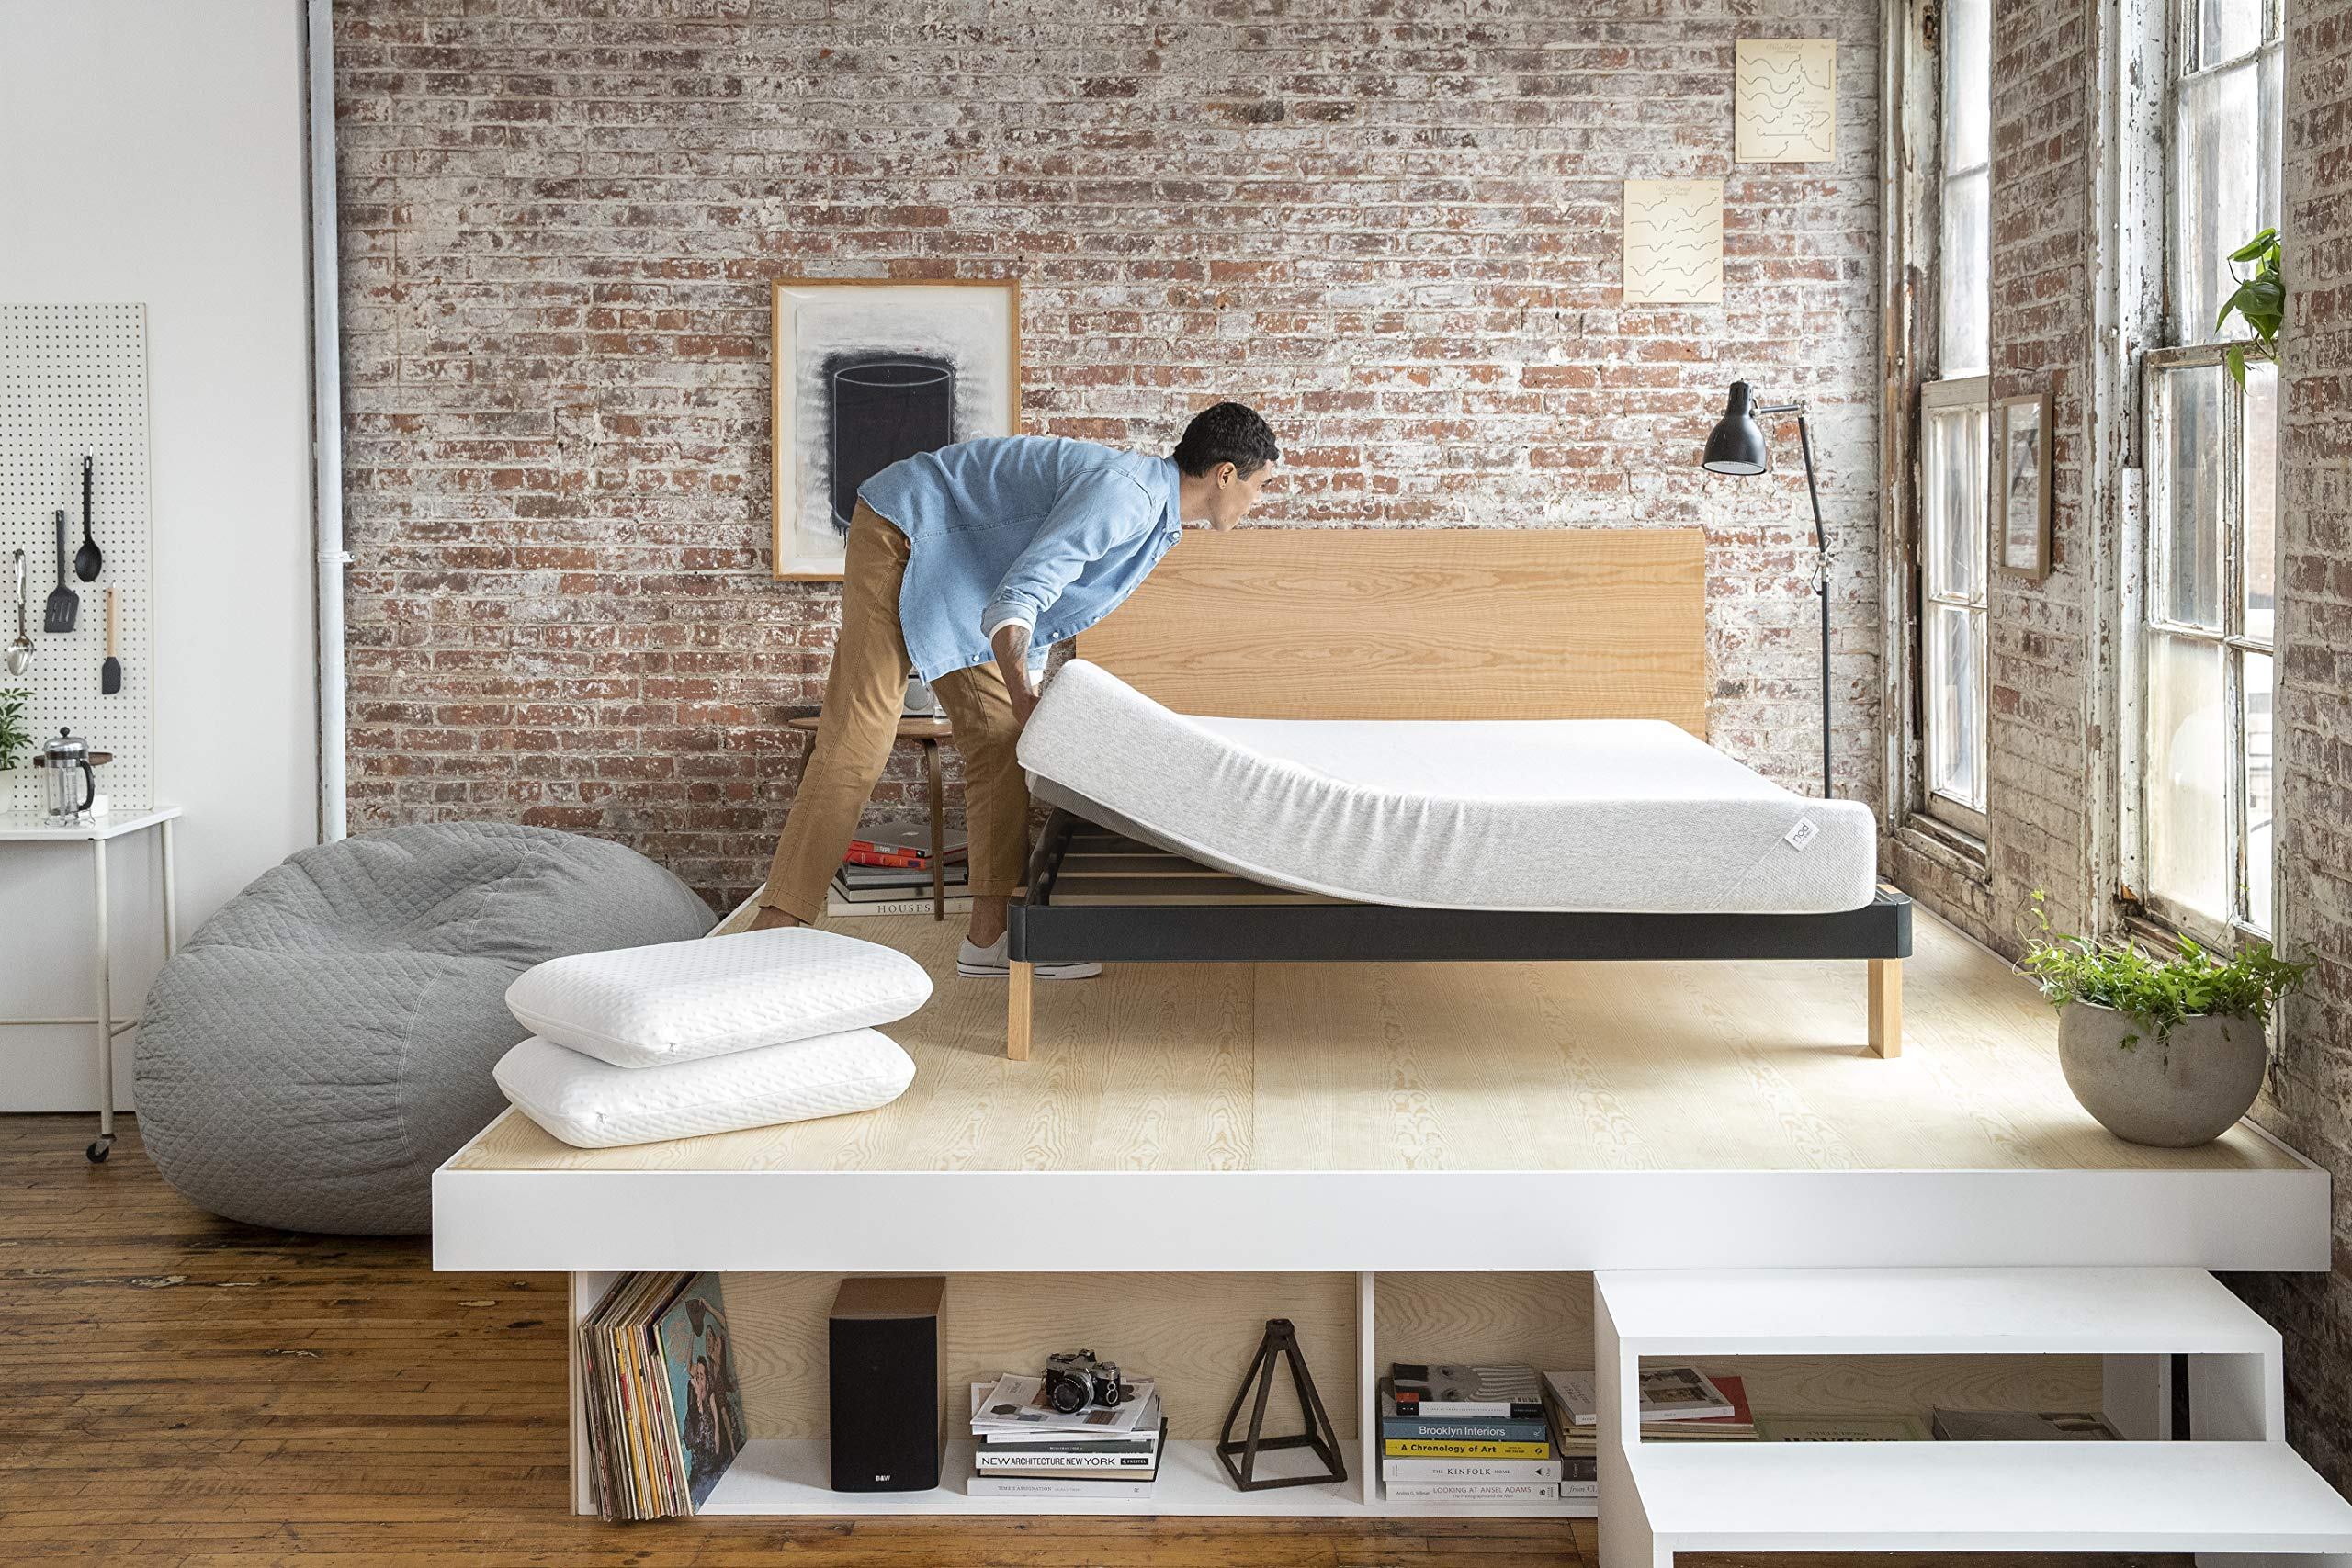 Nod by Tuft & Needle Twin Mattress, Amazon-Exclusive Bed in a Box, Responsive Foam, Sleeps Cooler & More Support Than Memory Foam, More Responsive Than Latex, CertiPUR-US, 10-Year Limited Warranty. by Nod by Tuft & Needle